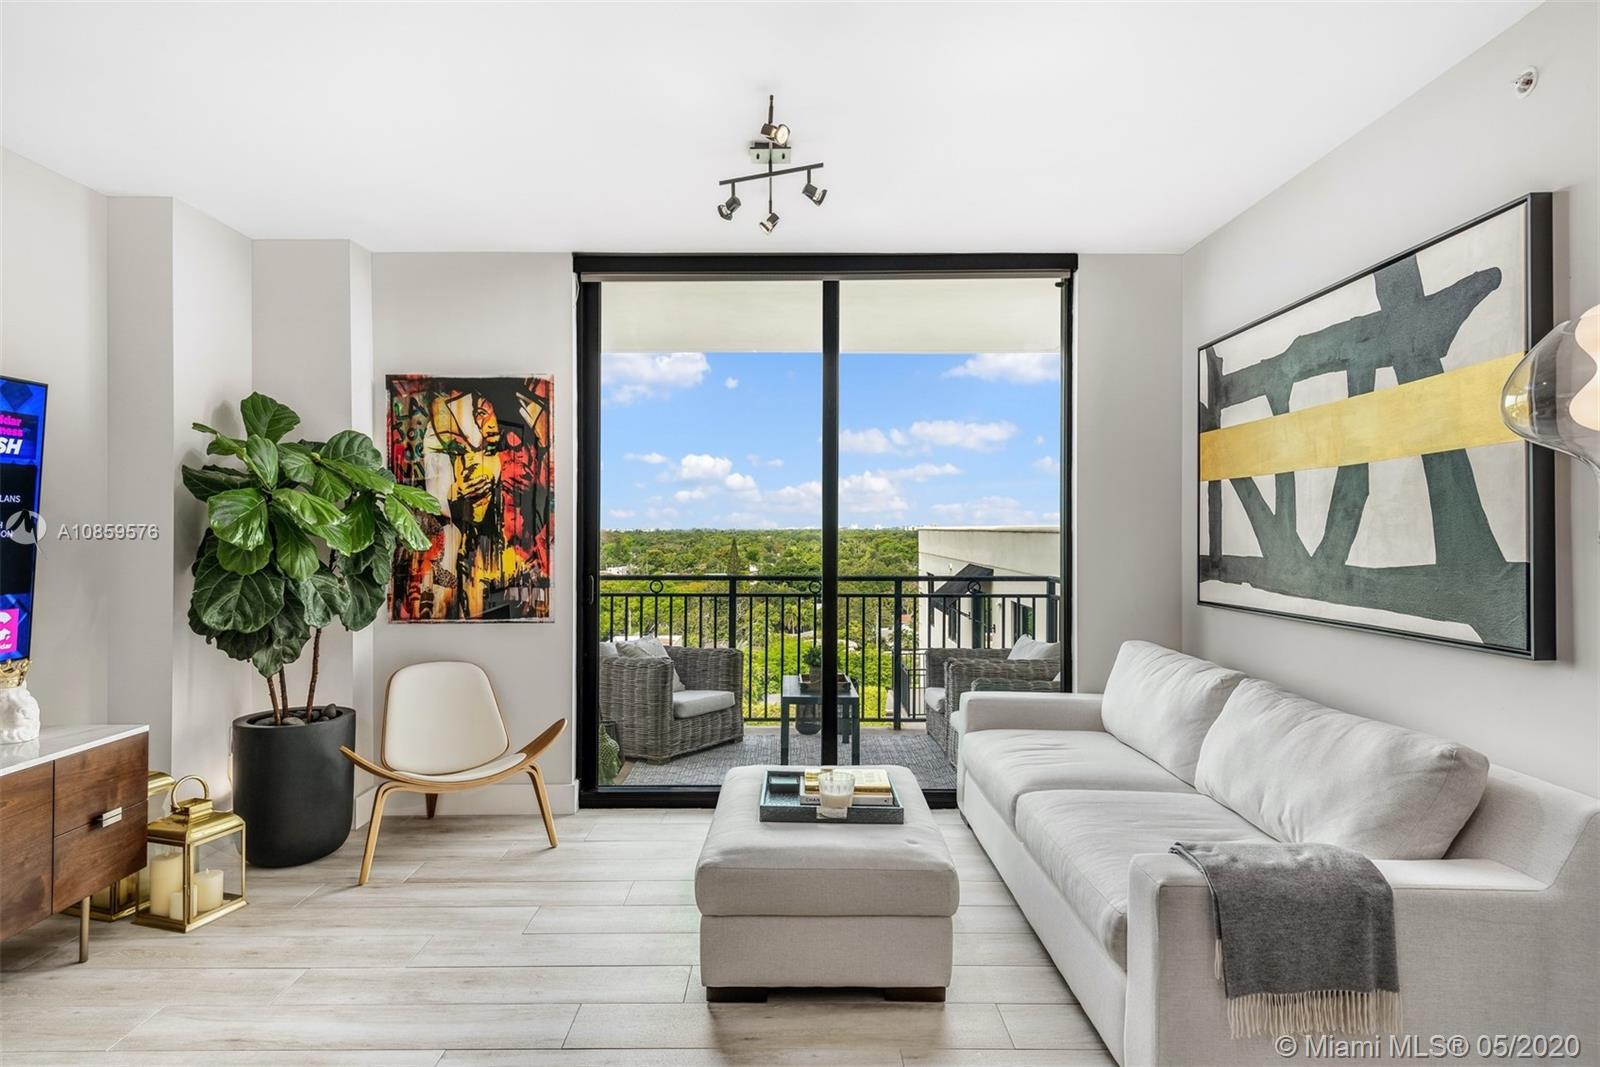 """Conveniently located on the Coral Gables corridor, Ponce de Leon Boulevard. Tastefully designed and fully renovated in 2019. Well thought-out, one-of-a-kind 2 bedrooms 2 bath featuring 2 parking spaces and 2 terraces (one over 500 sq ft) overlooking the famous Biltmore Hotel. Gorgeous kitchen with waterfall calacatta marble counter top and large pantry. Perfect for entertaining. Oversized master bedroom and bathroom include top of the line toilet and fixtures. This unit was designed for the perfect """"turn key ready"""" consumer.  Calming unobstructed West views of Miami. Sunsets will make you want to stay here and make it your home! Building amenities include gym, pool, 24/7 security & concierge, club room and community play area. Give us a call today!"""